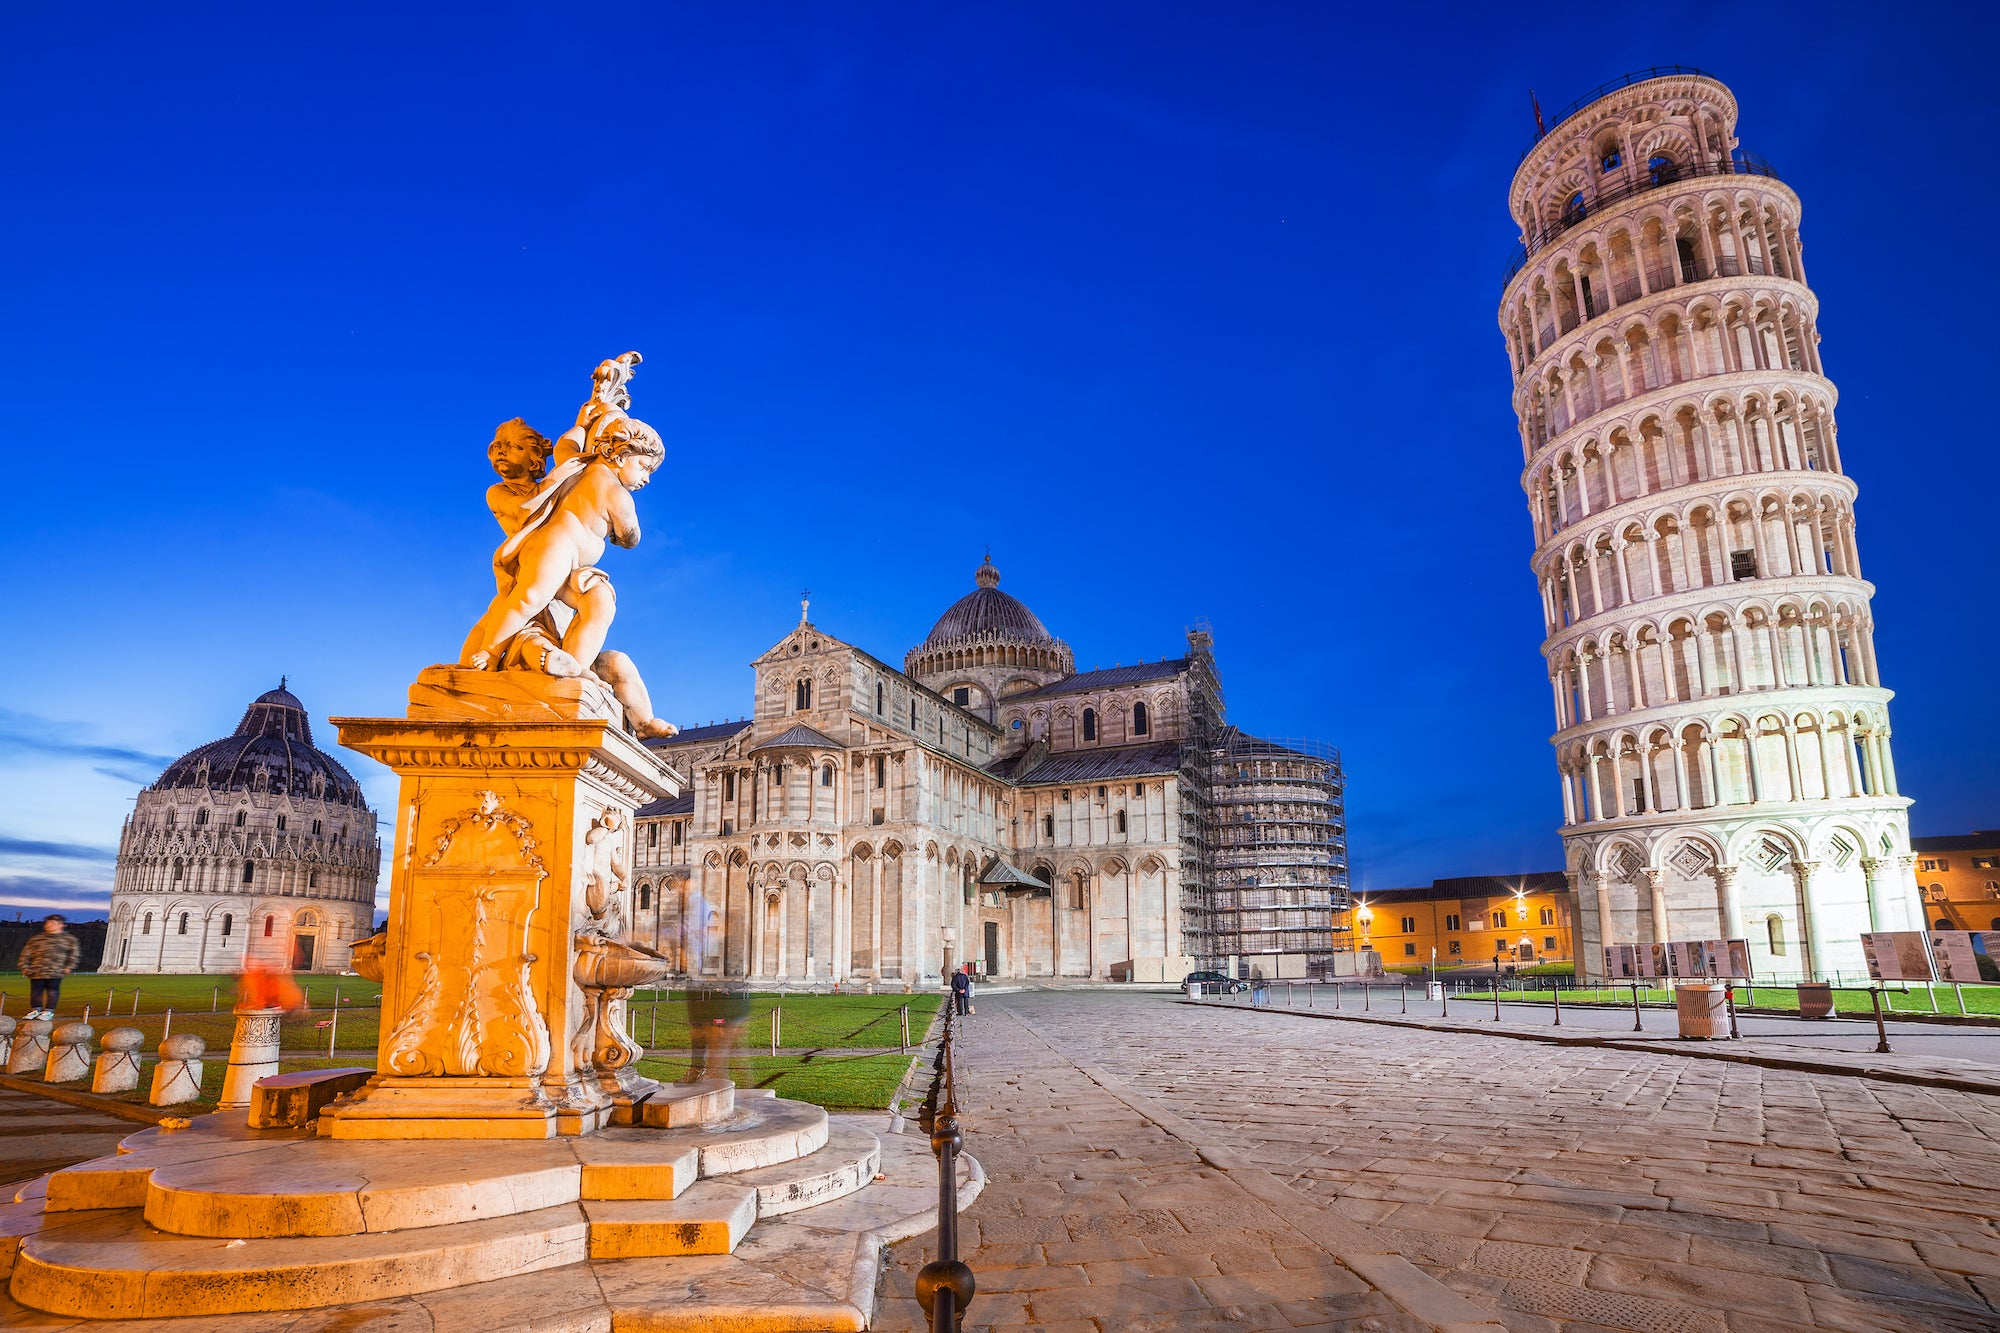 Toscana – Torre pendente di Pisa (The leaning tower of Pisa)